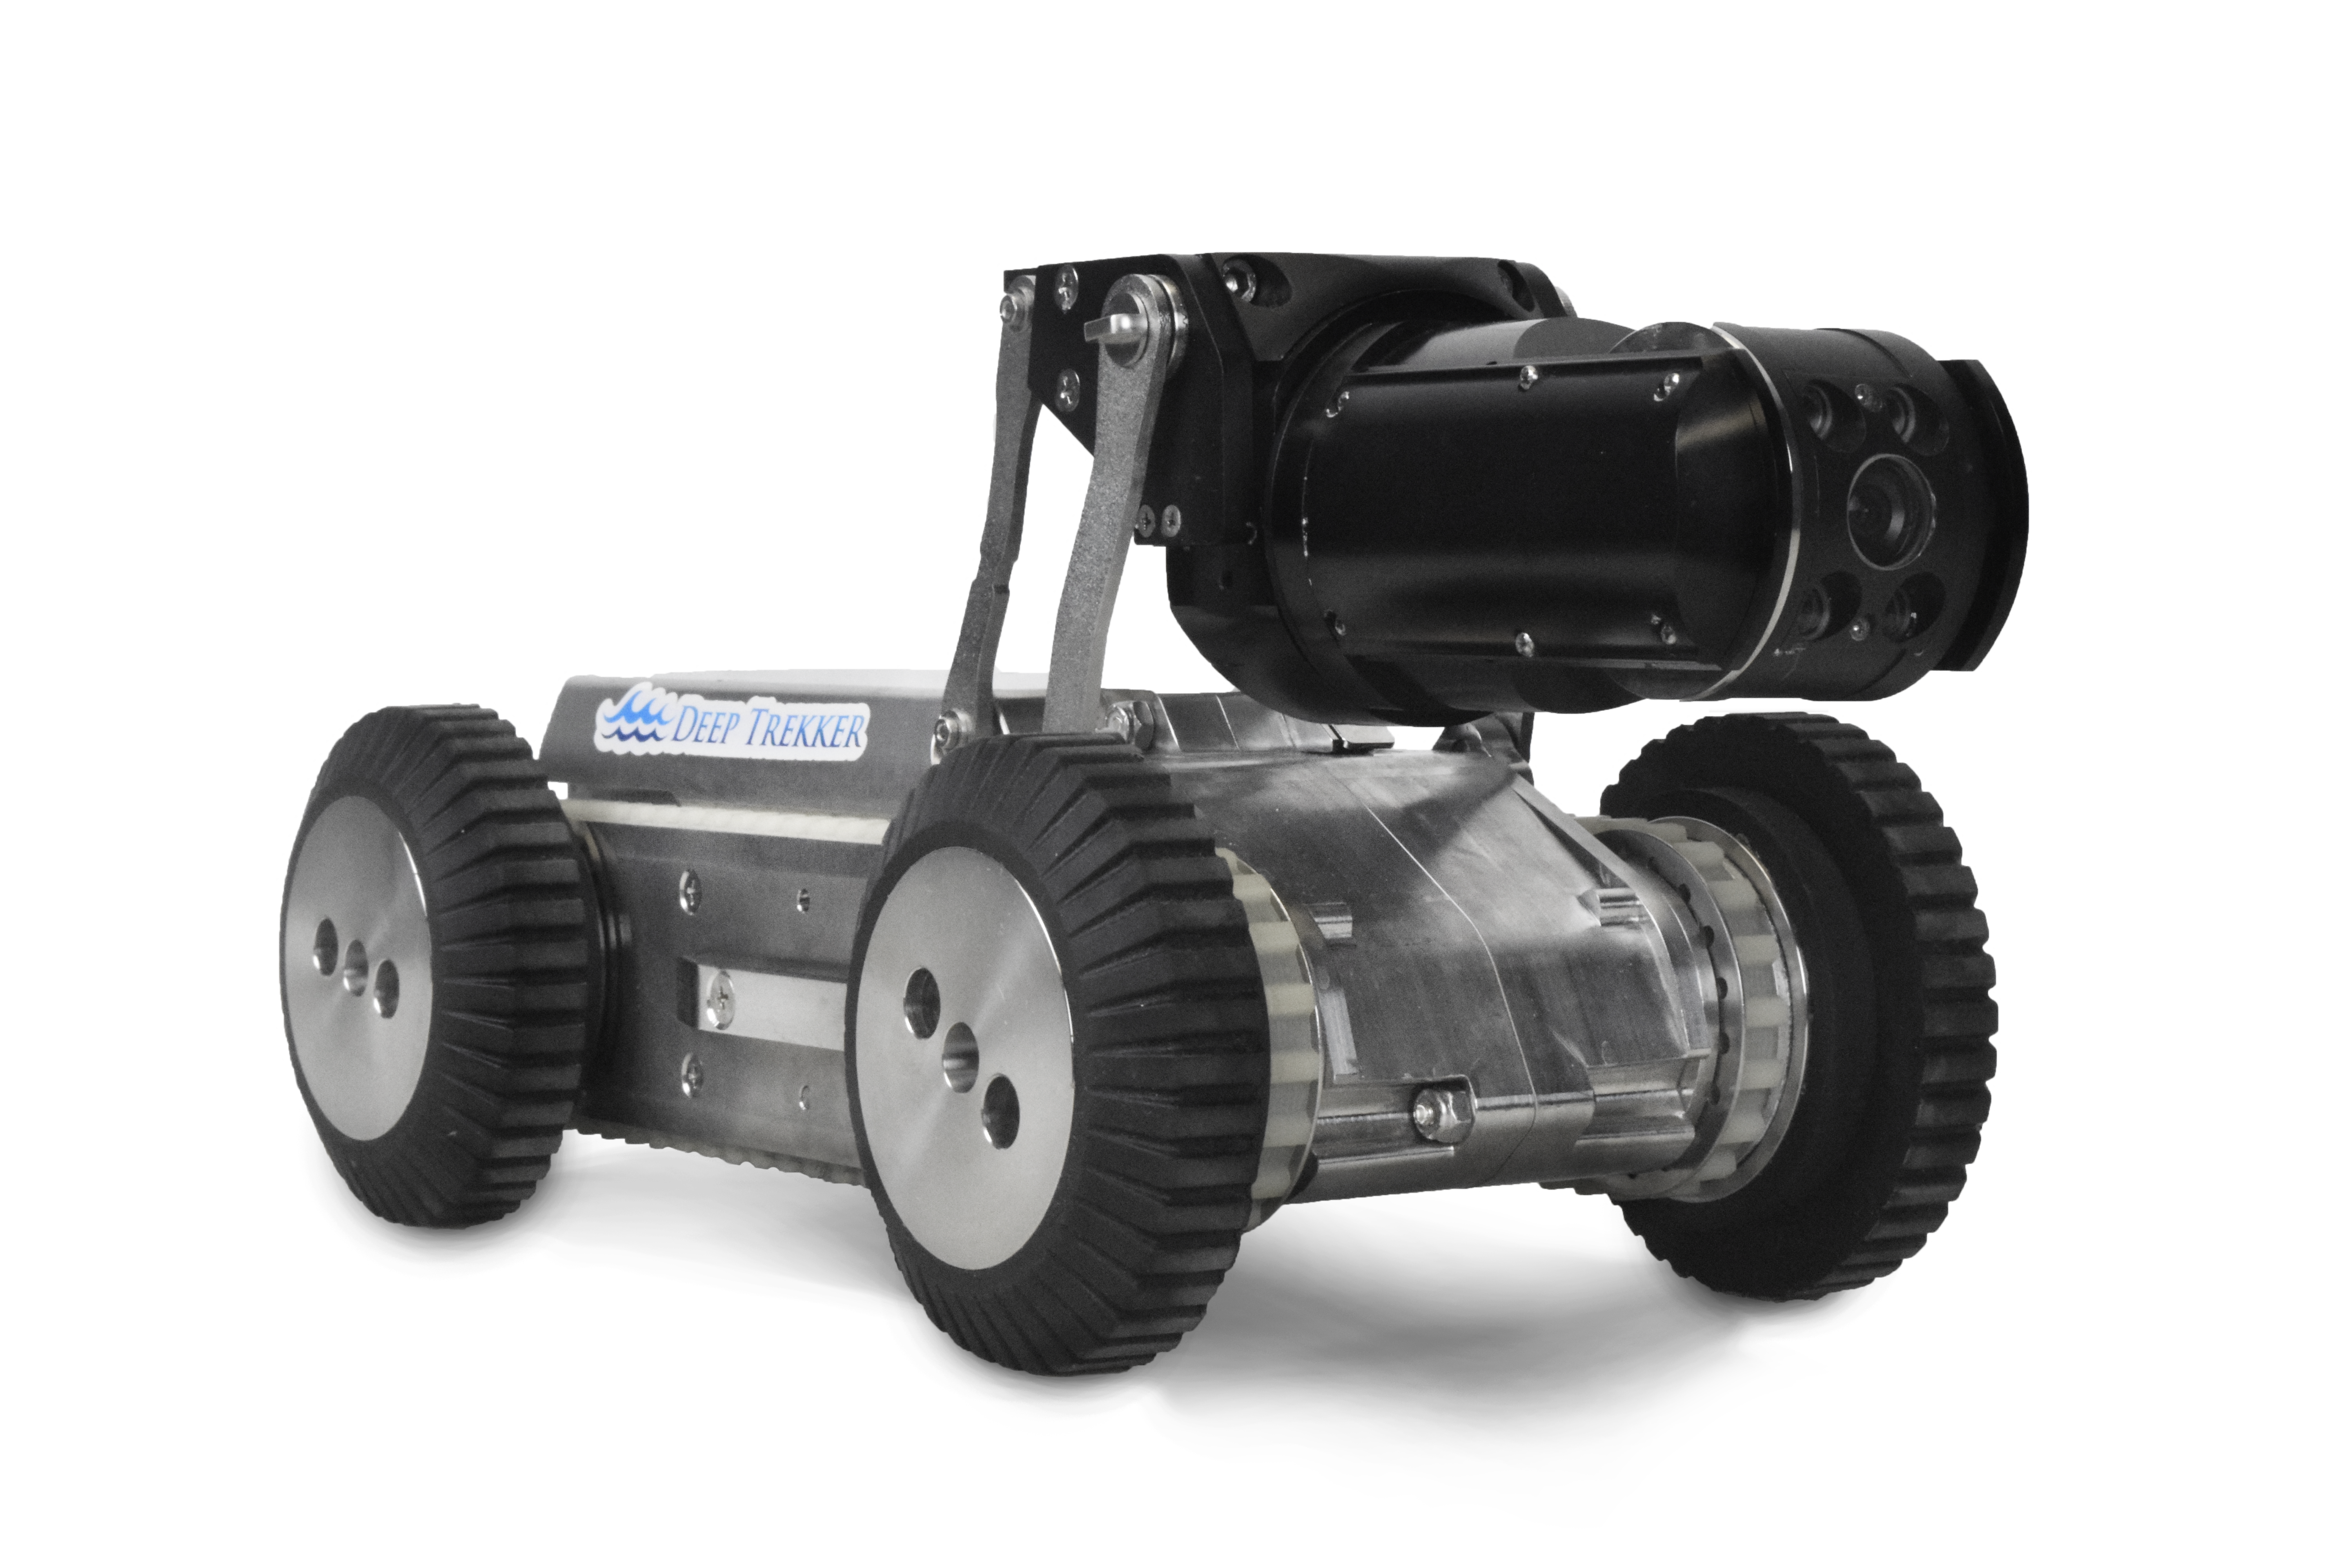 DT320 Mini Pipe Crawler With Camera up